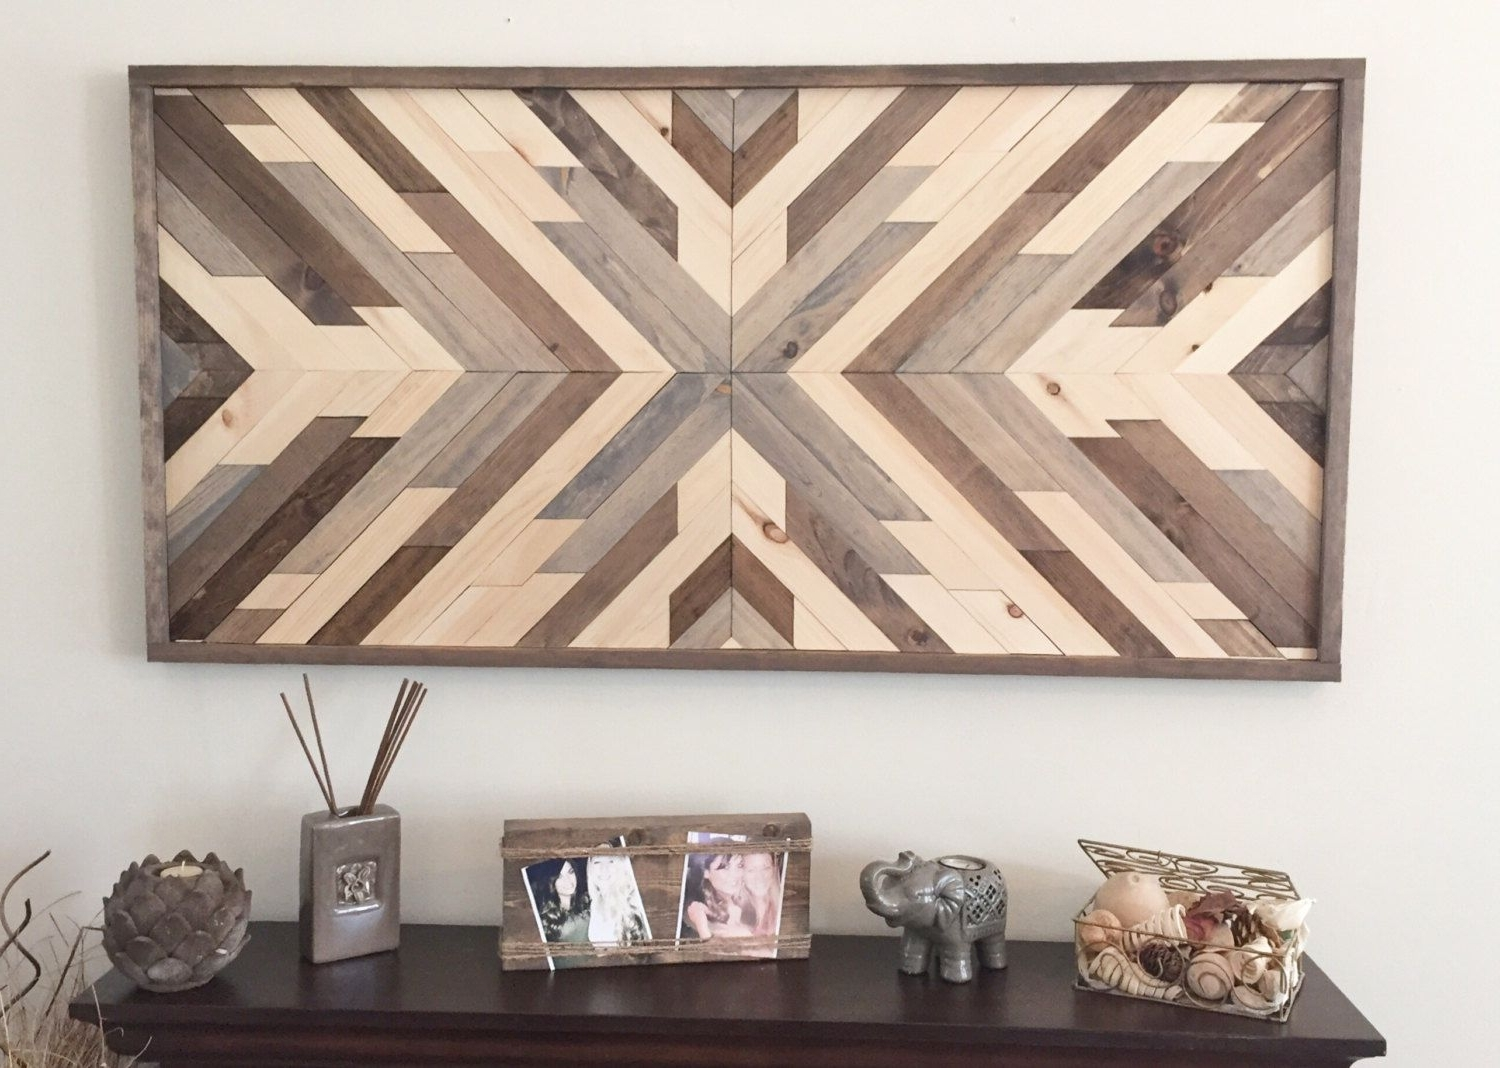 Fashionable Reclaimed Wood Wall Art, Rustic Wall Art, Barn Wood Wall Art For Rustic Wall Art (View 10 of 15)